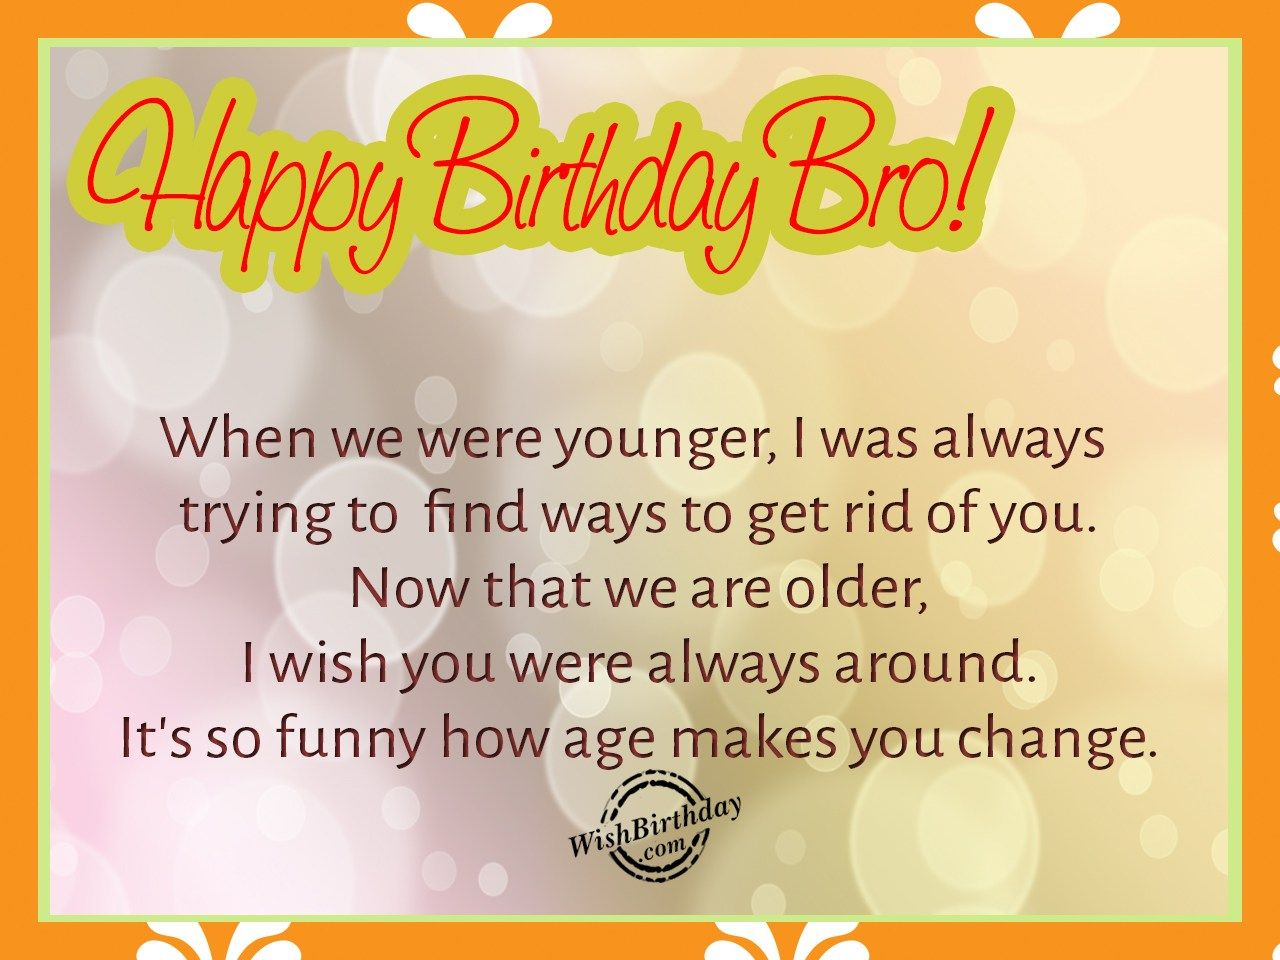 Pin by ideahaul on birthday wishes for brother pinterest happy birthday wishes for younger brother hindi clipartsgram sister quotes best free home design idea inspiration m4hsunfo